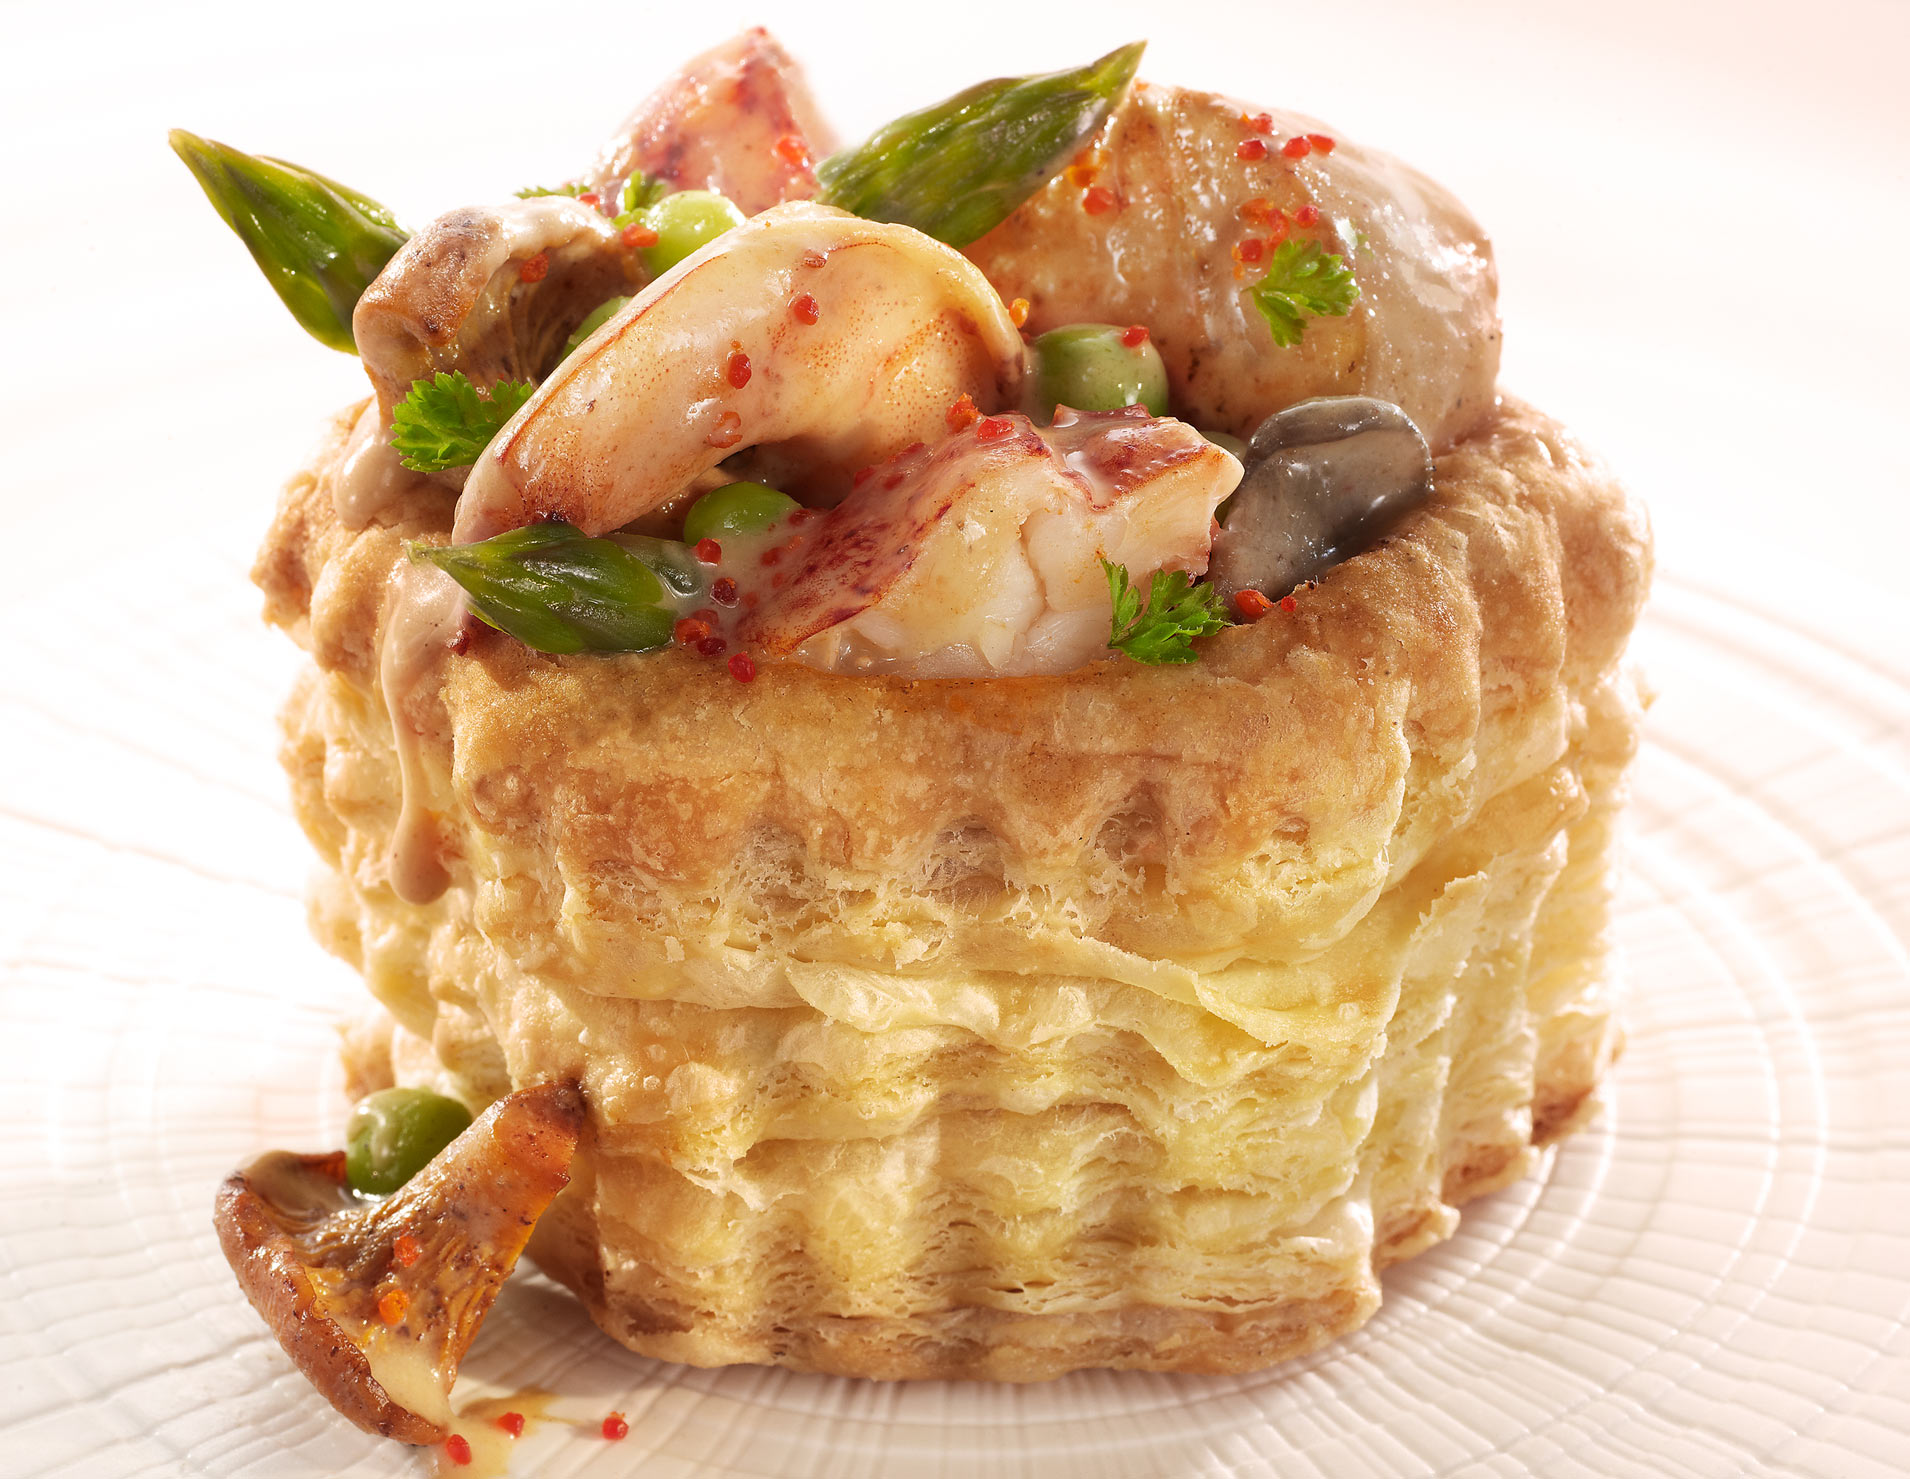 Glasshouse Assignment - David Bishop - Food Photography - Seafood Vol au Vent.